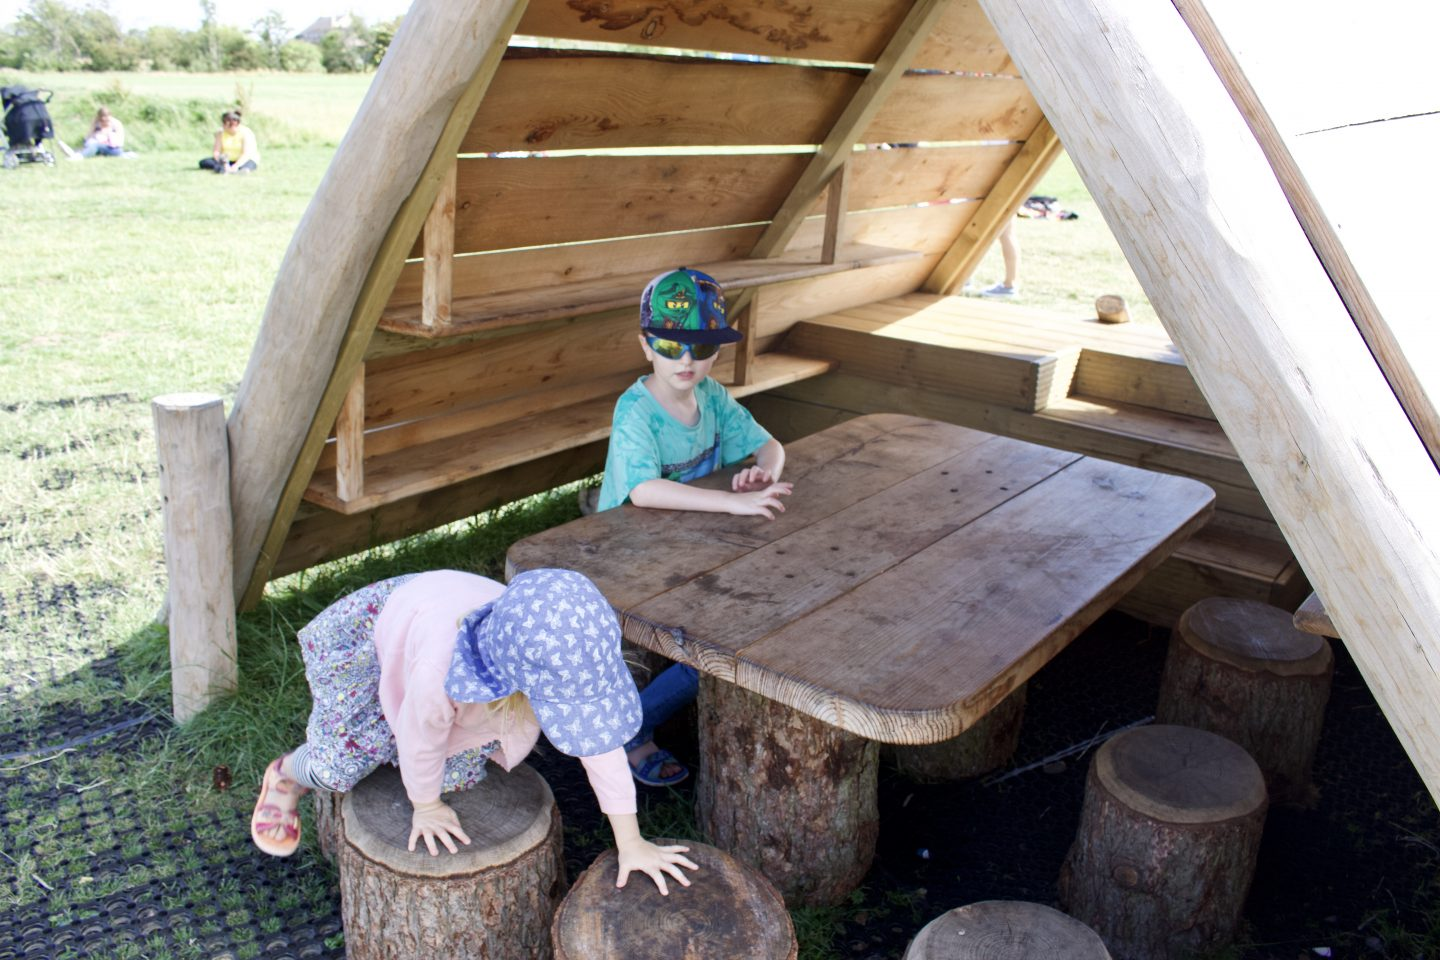 Two children playing at a wooden table and stools